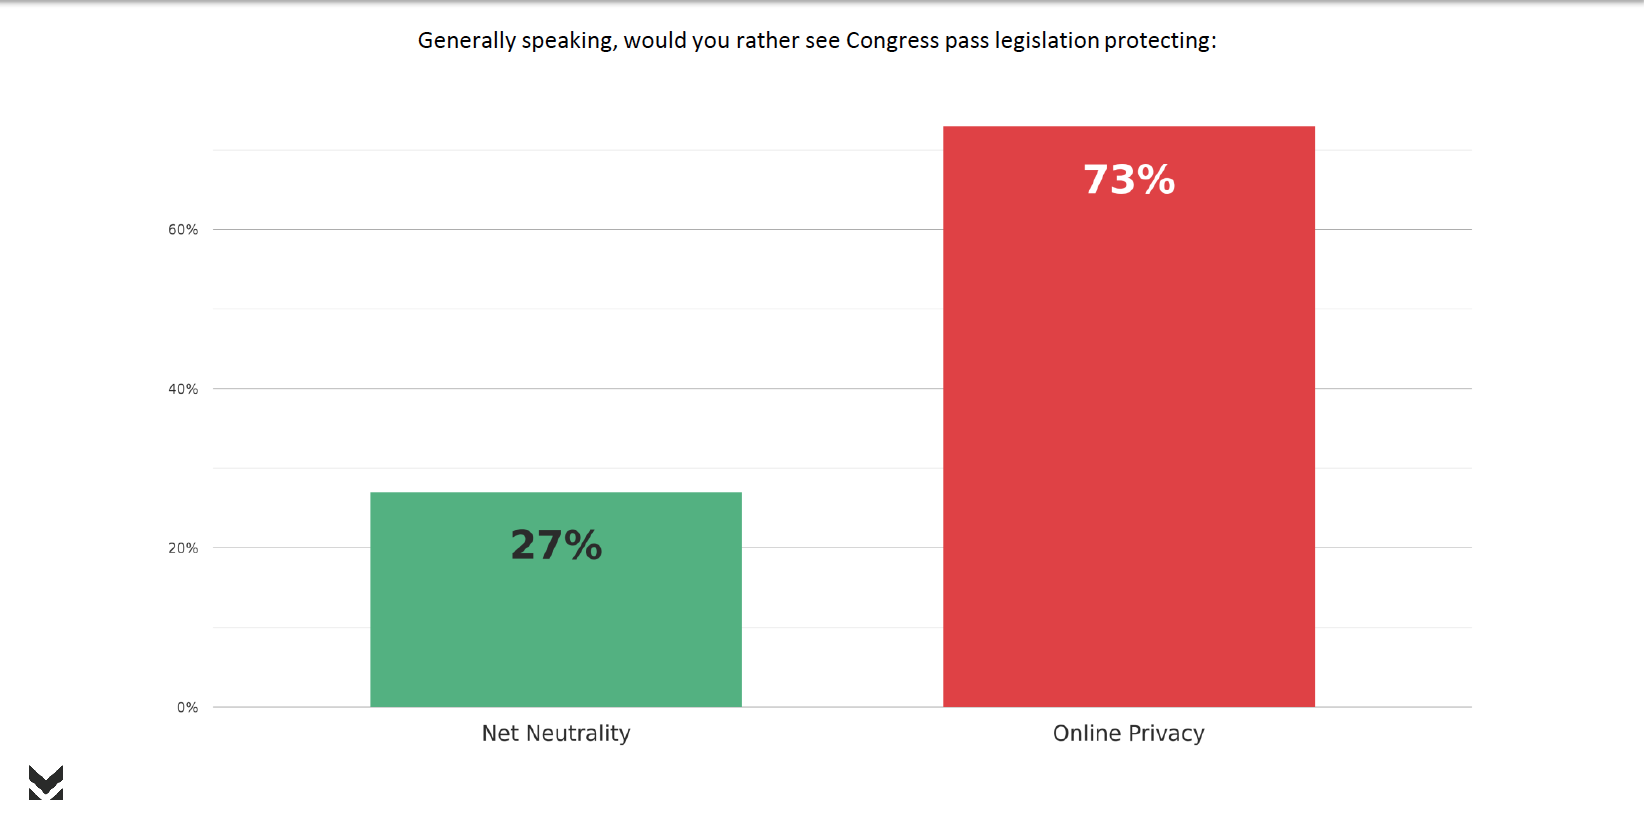 73 percent are more concerned about privacy